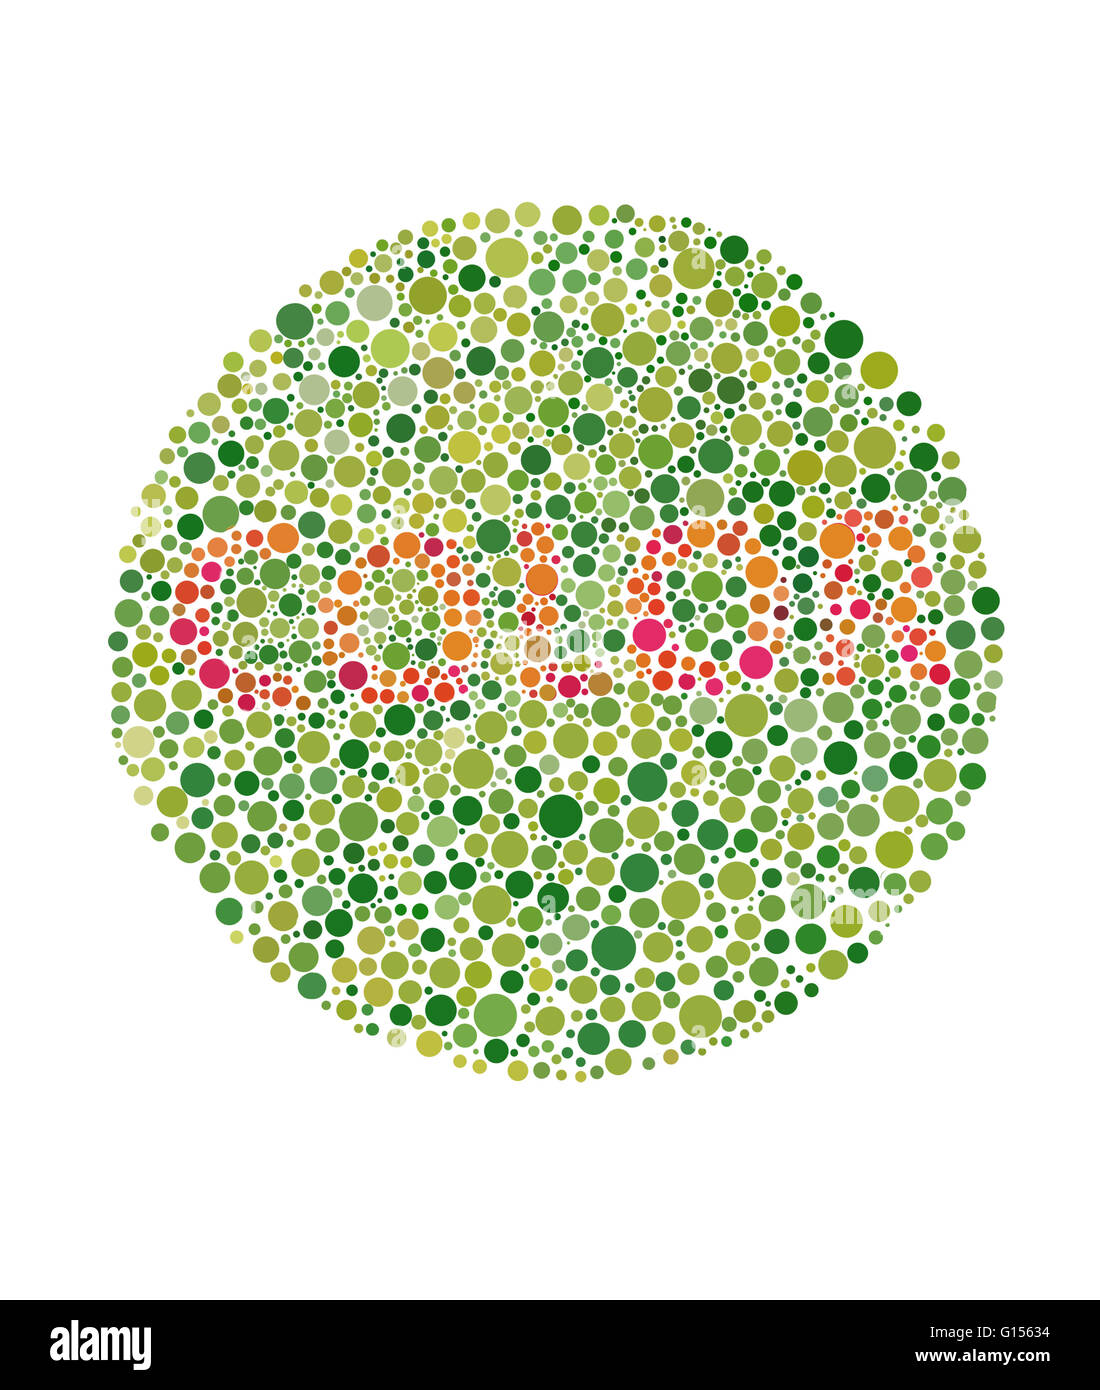 Ishihara Color Test Stock Photos & Ishihara Color Test Stock Images ...